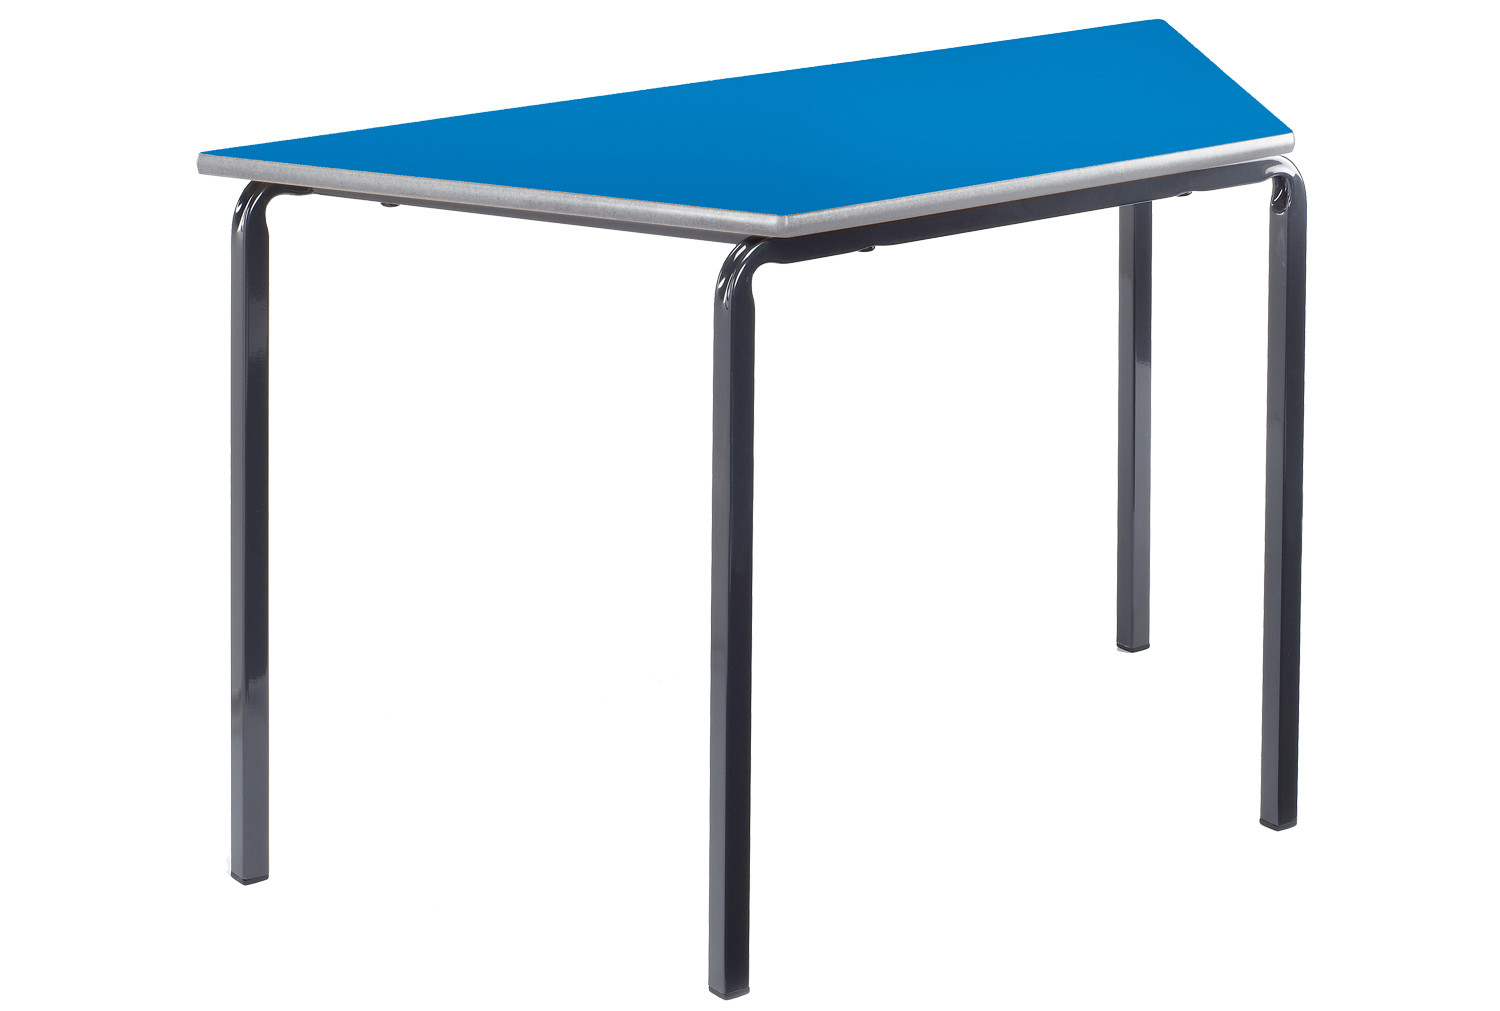 Trapezoidal Crush Bent Classroom Tables 11-14 Years